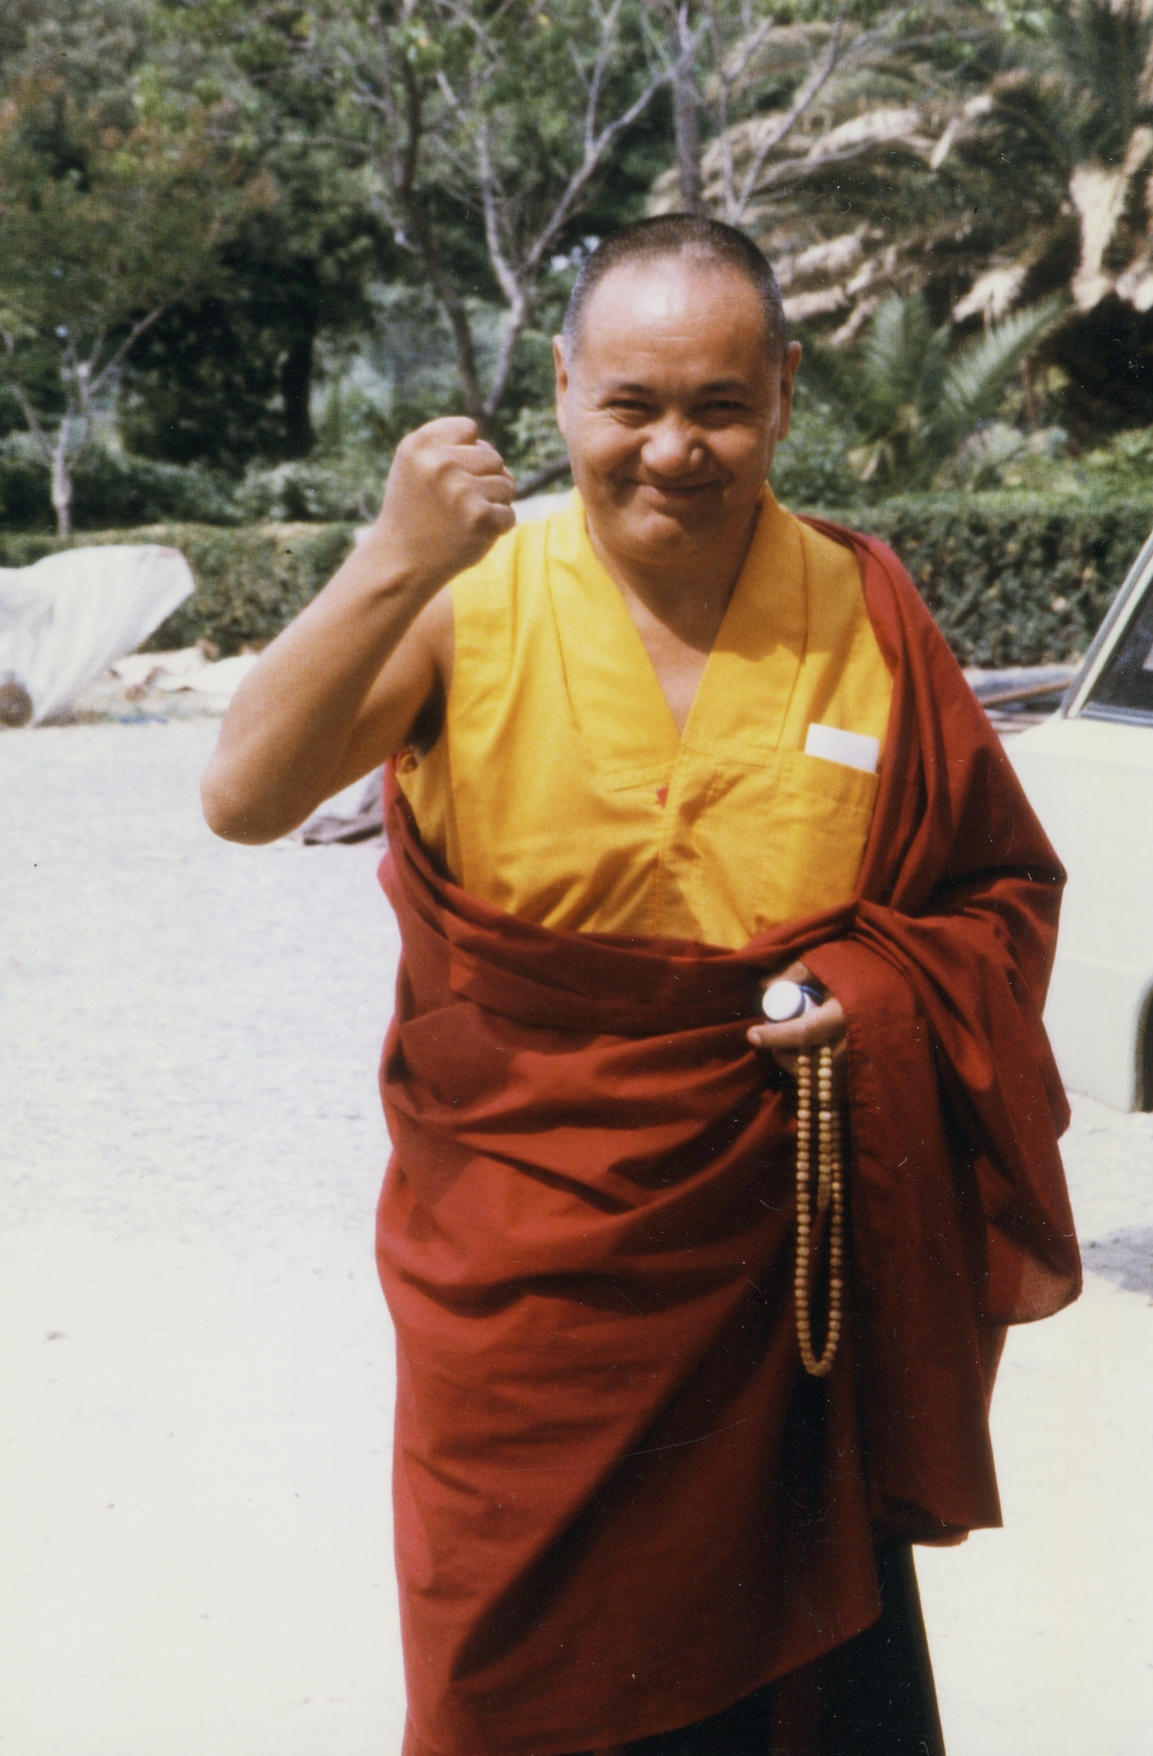 Lama Yeshe in Switzerland, 1978. Photo by Ueli Minder.